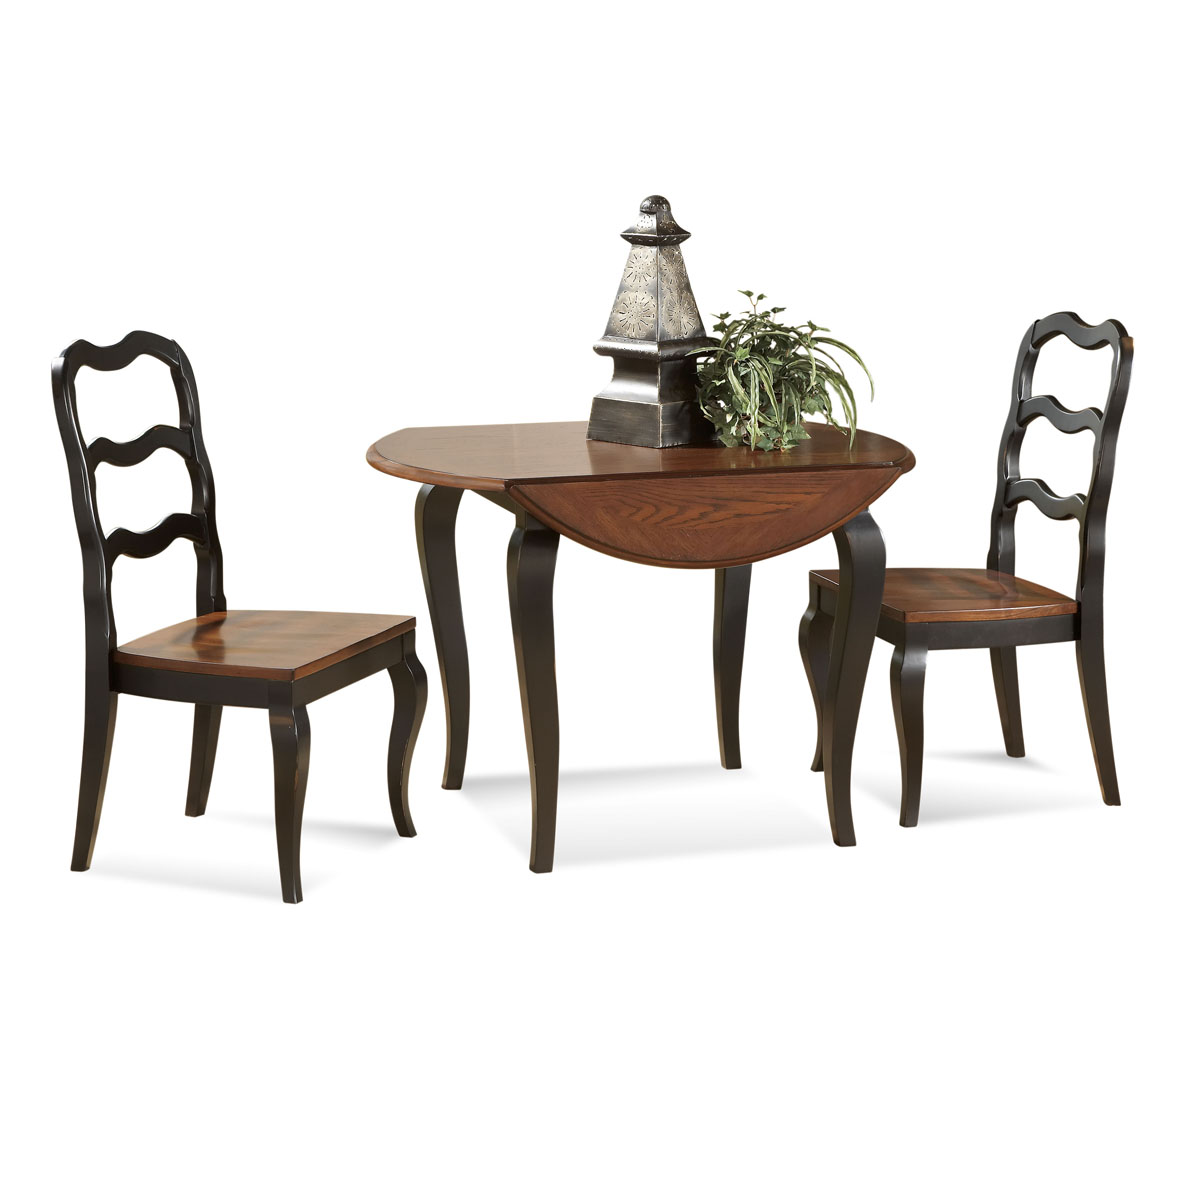 5 Styles of Drop Leaf Dining Table for Small Spaces  : drop leaf dining table in classic style two classic dining chairs with wood finish seating from homesfeed.com size 1200 x 1200 jpeg 139kB